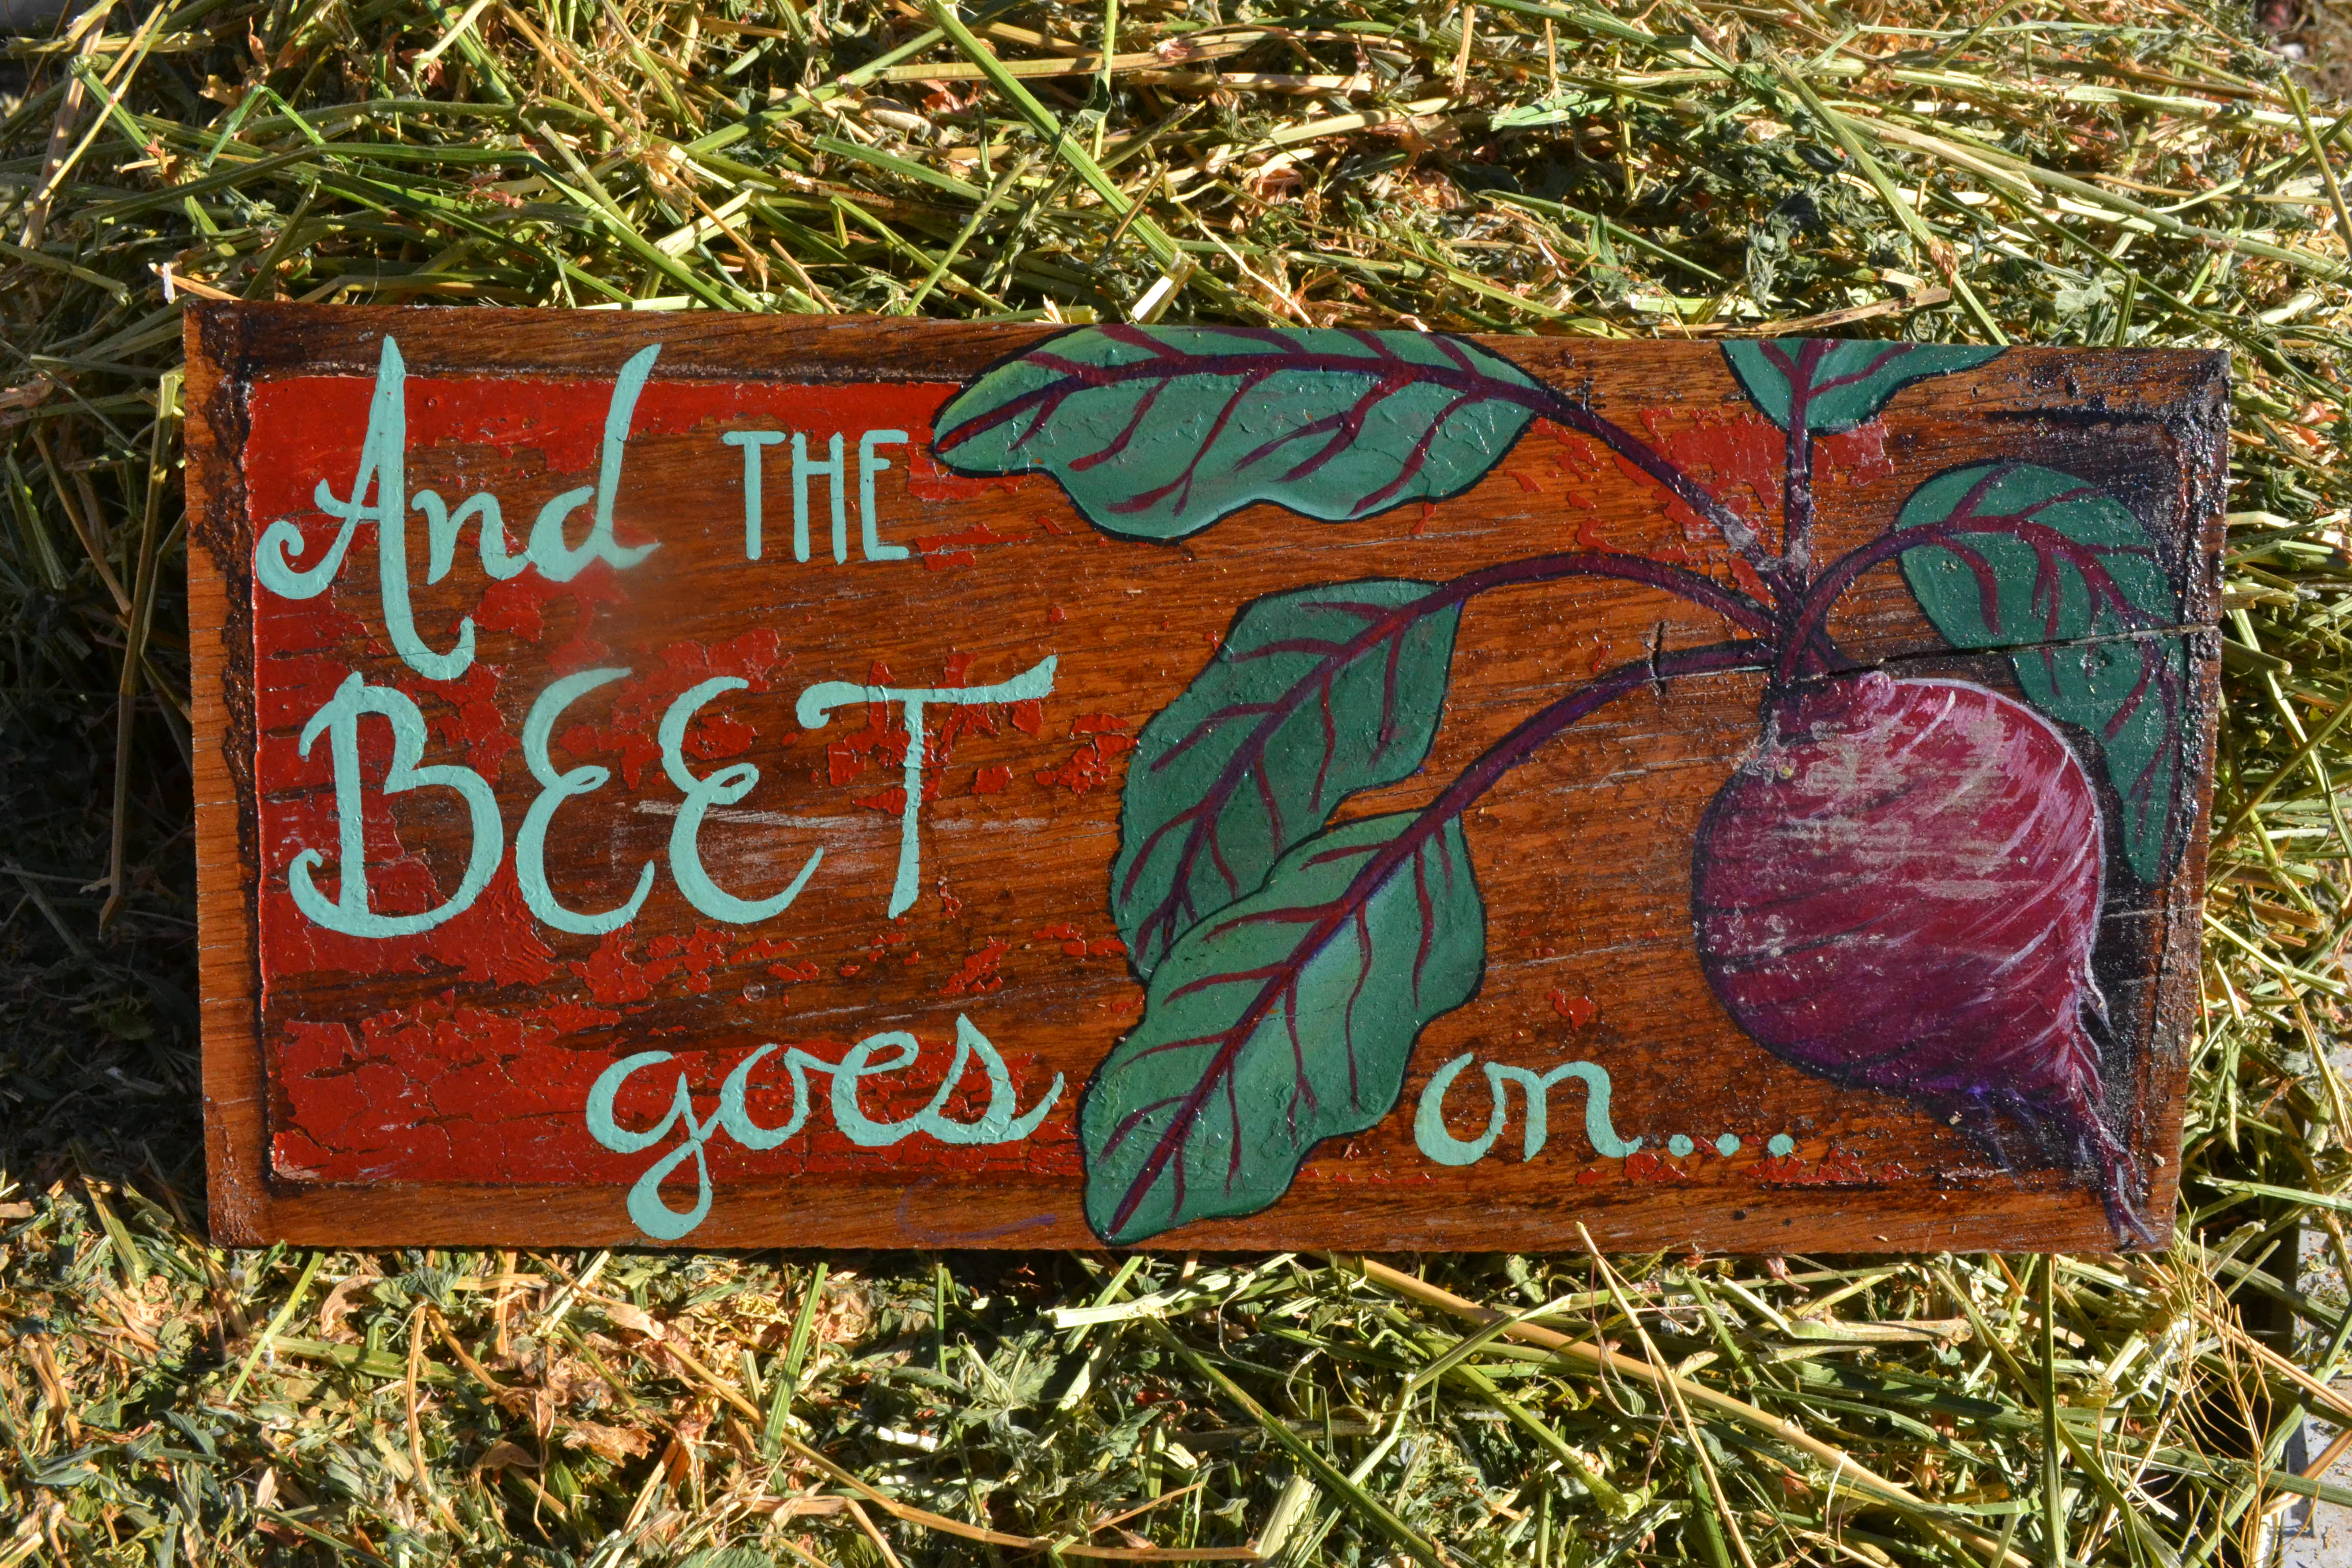 And the BEET goes on... sign